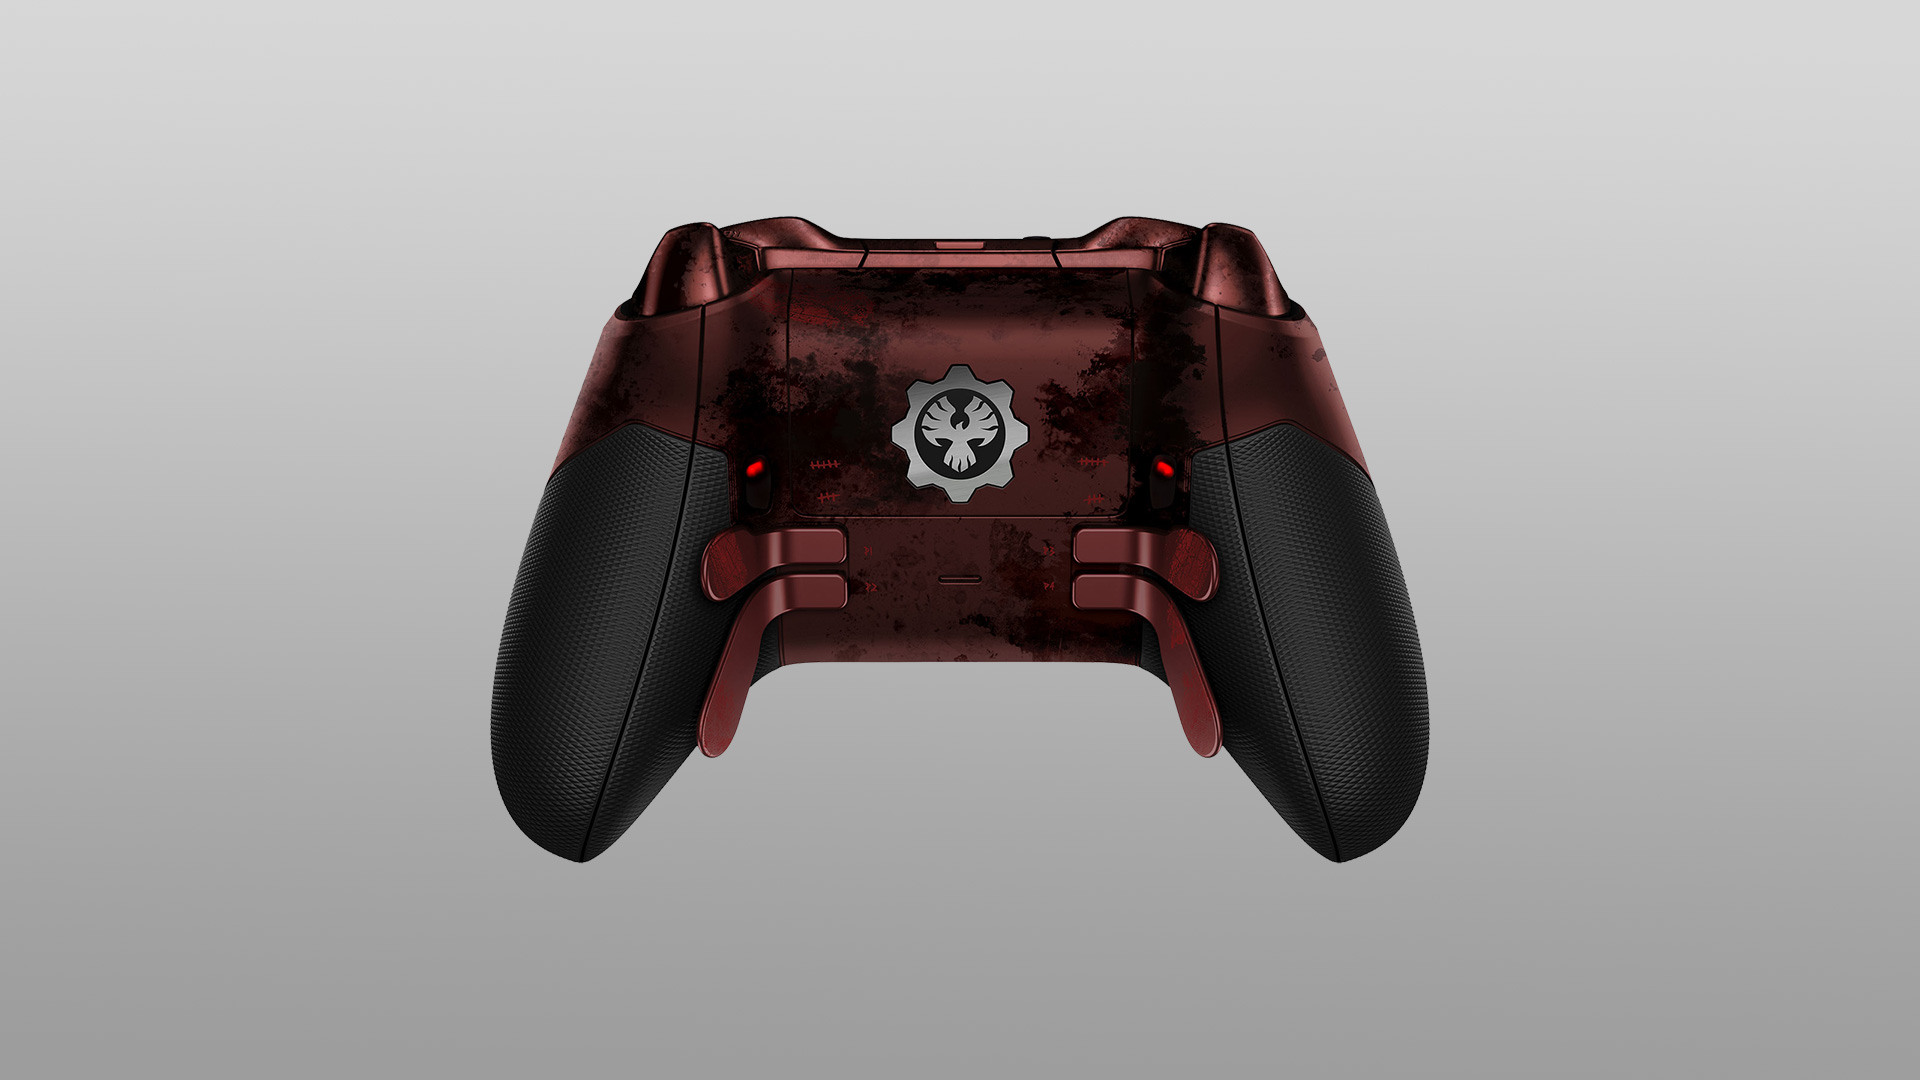 Fall Mobile Wallpapers Gears Of War 4 S Xbox One Elite Controller Up For Pre